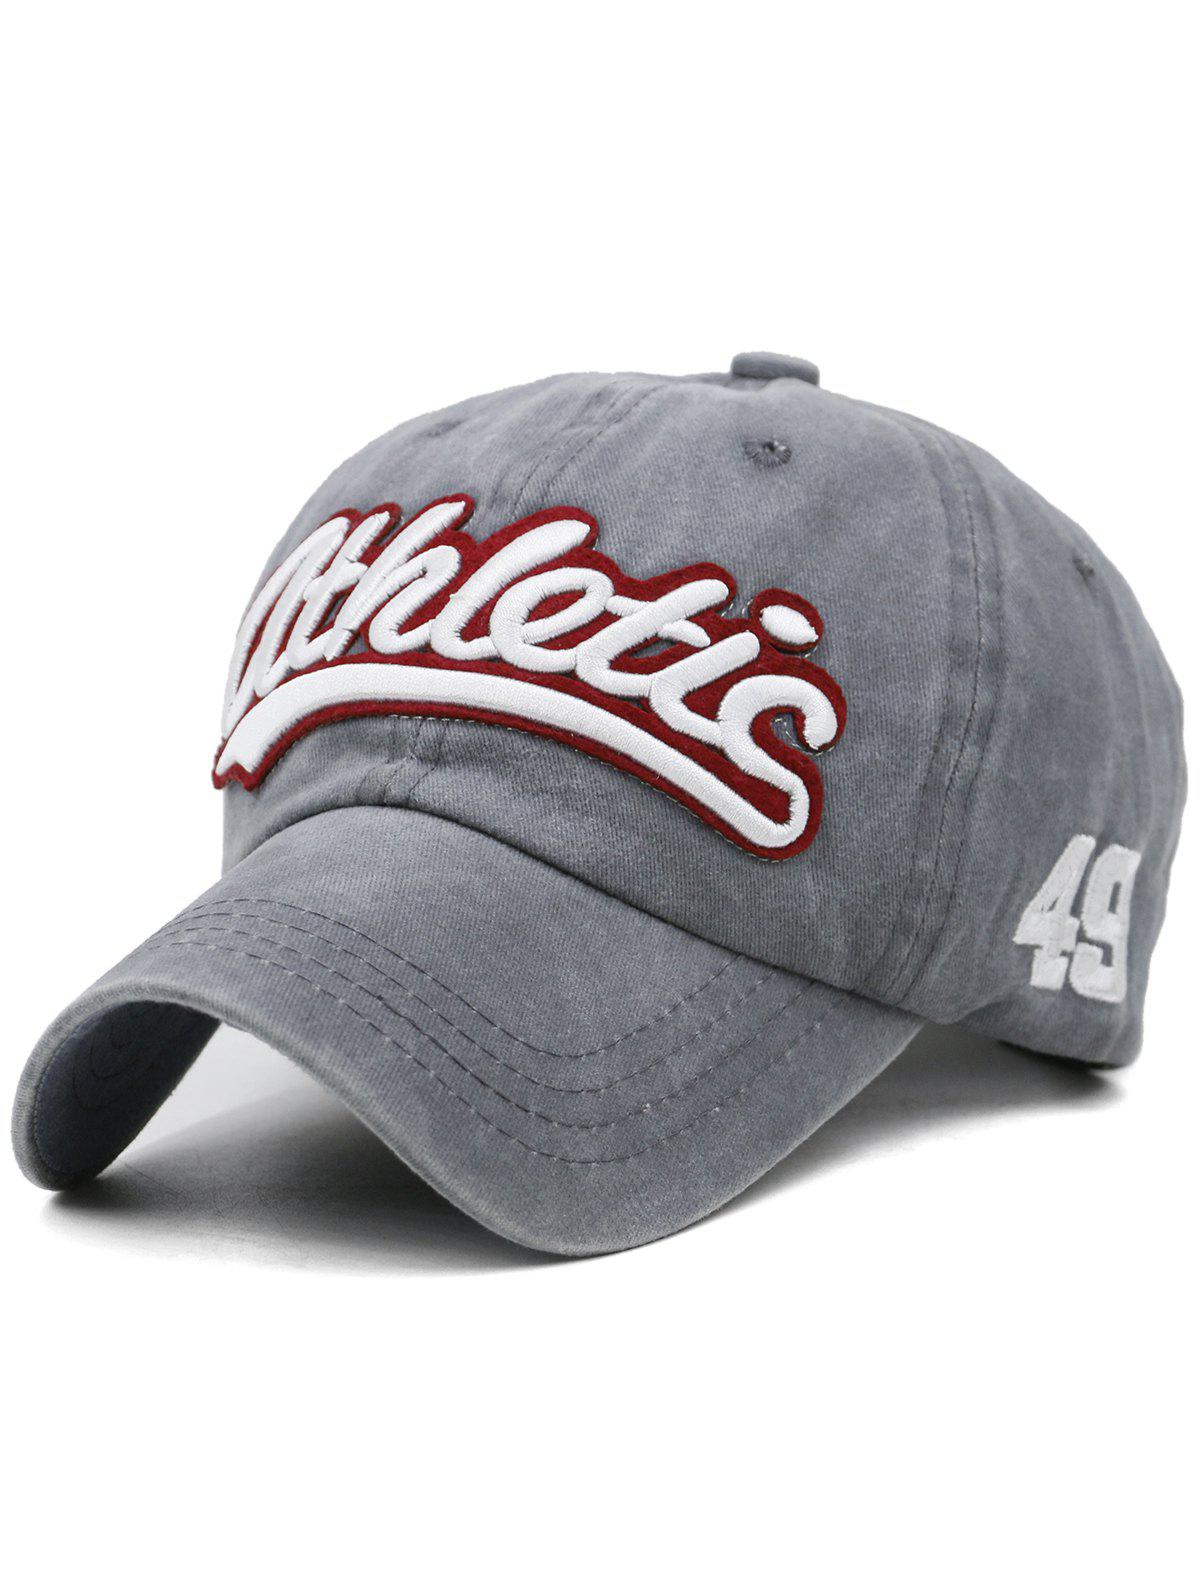 Shops Letter  Embroidered Washed Dyed Trucker Hat